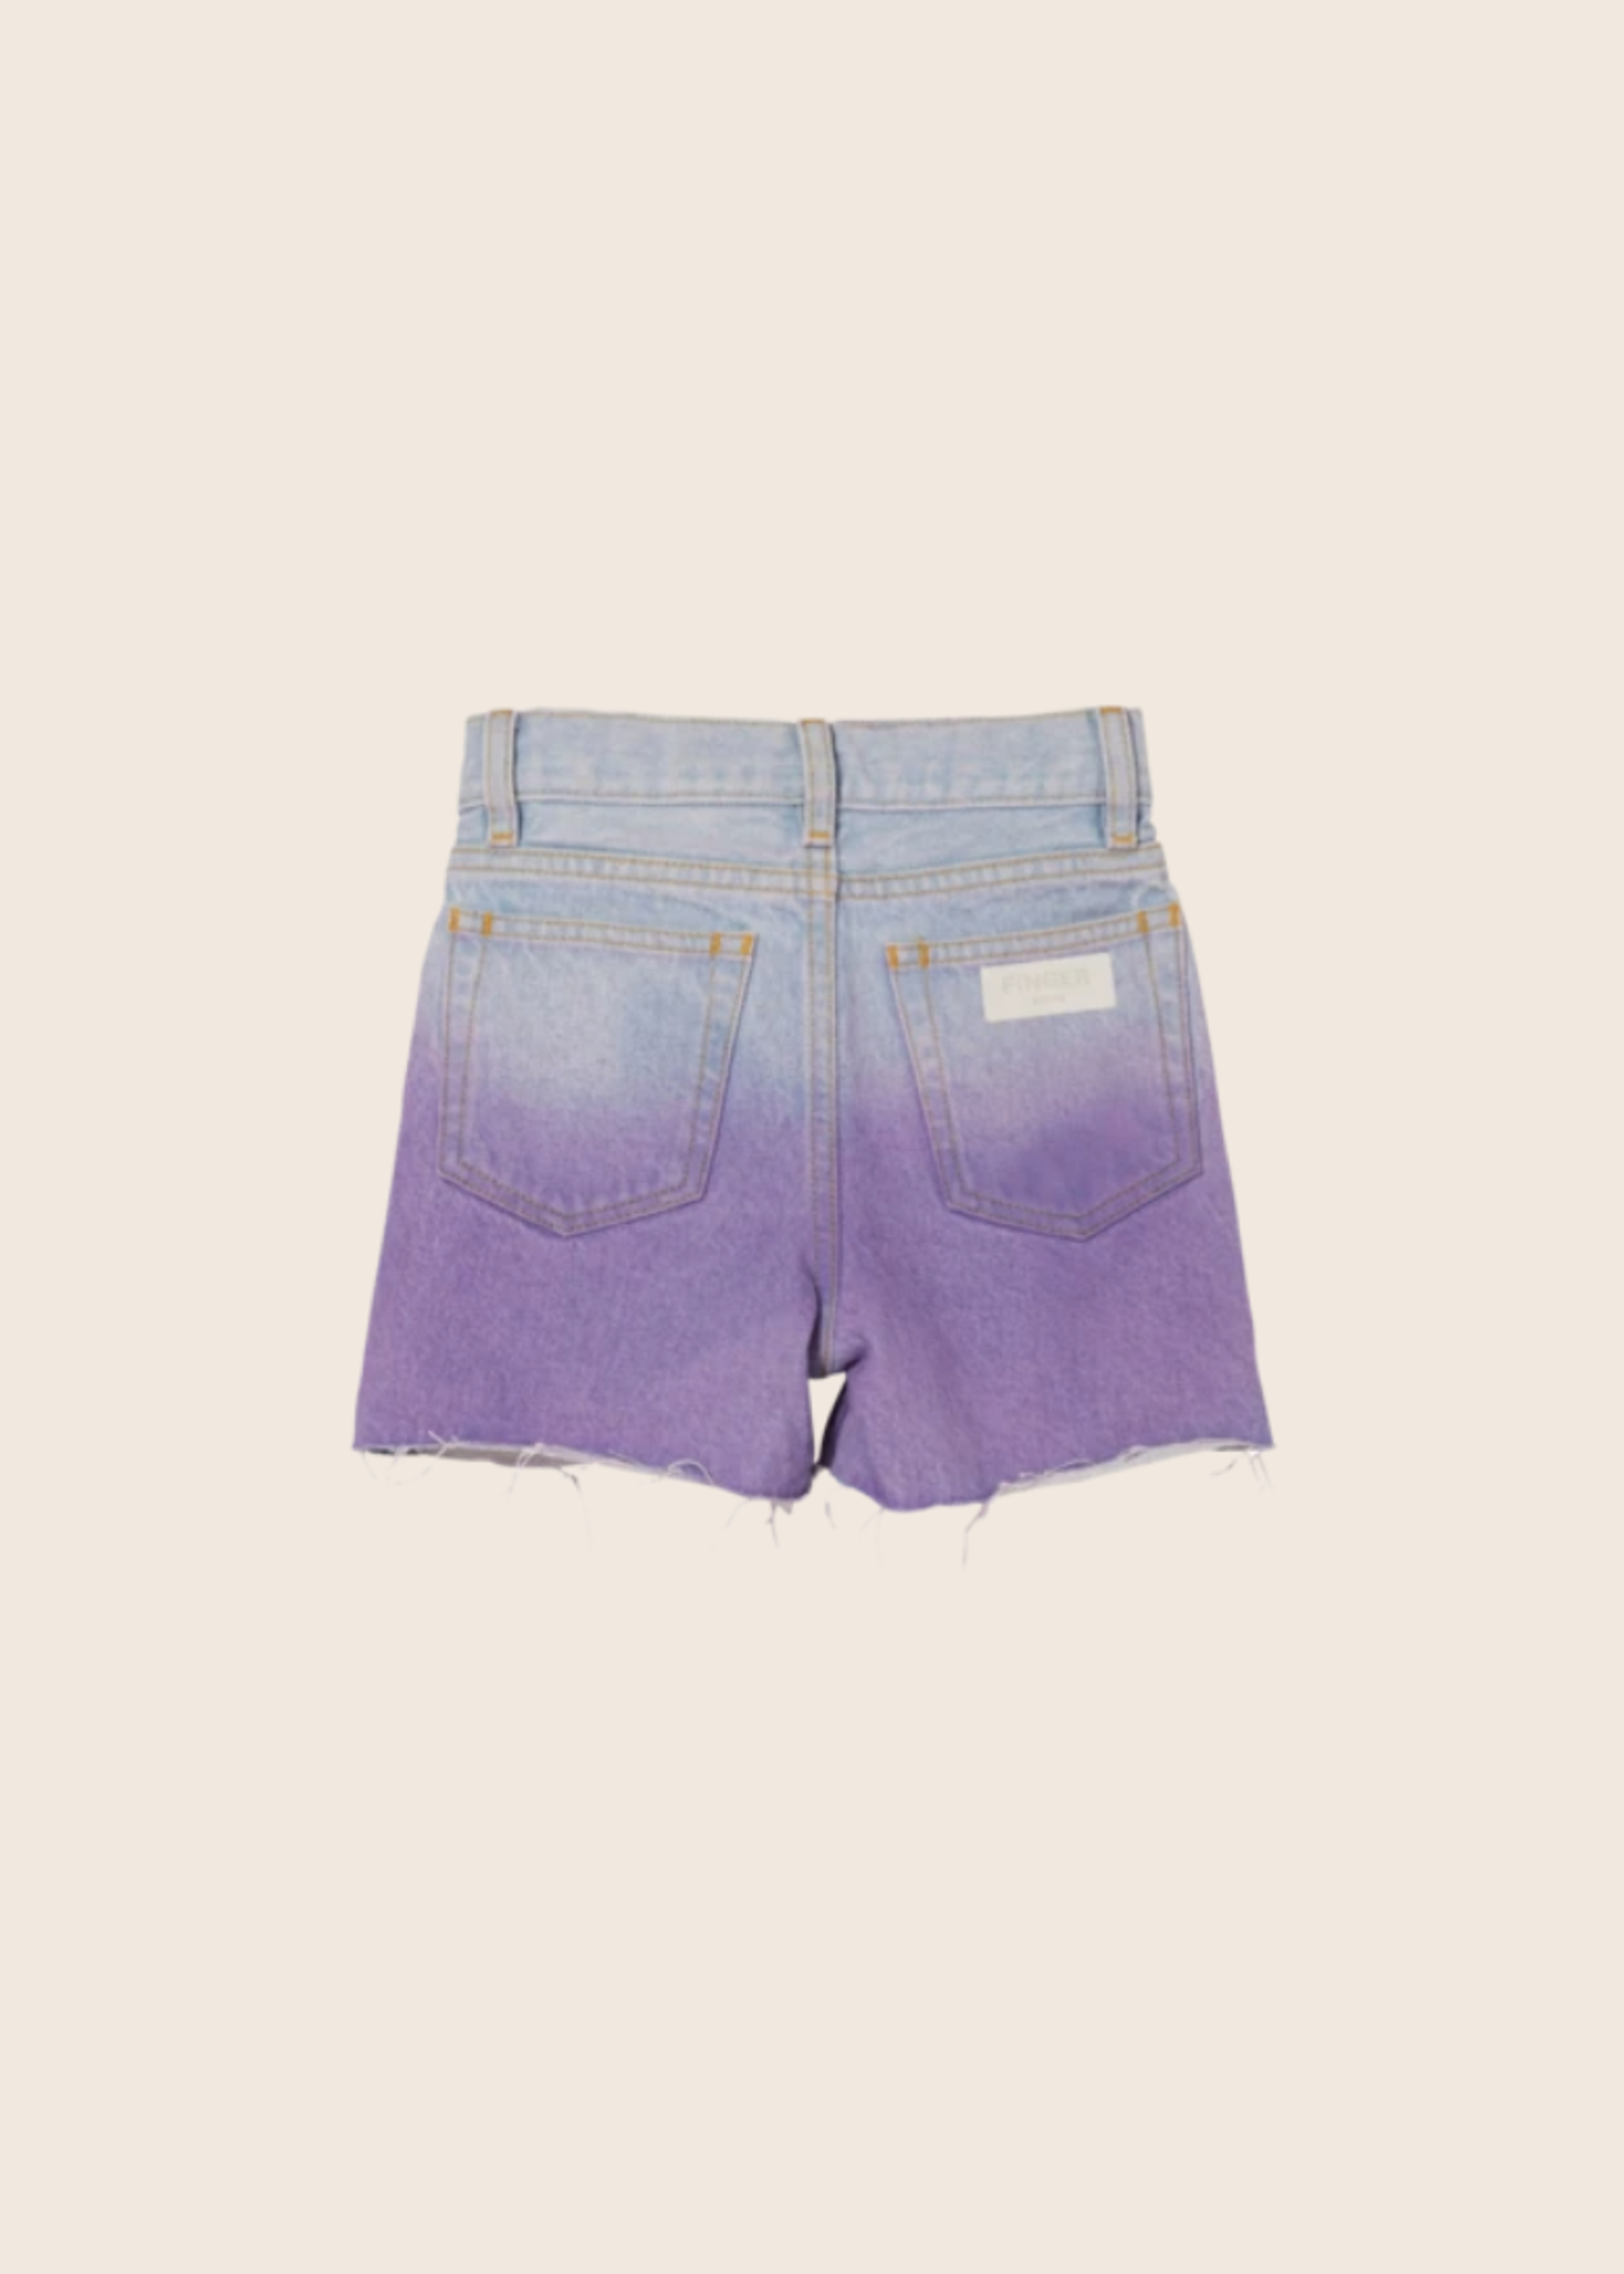 FINGER IN THE NOSE CHERRYL Bleached Blue/Parma Dip Dye - High Waist 5 Pockets Shorts